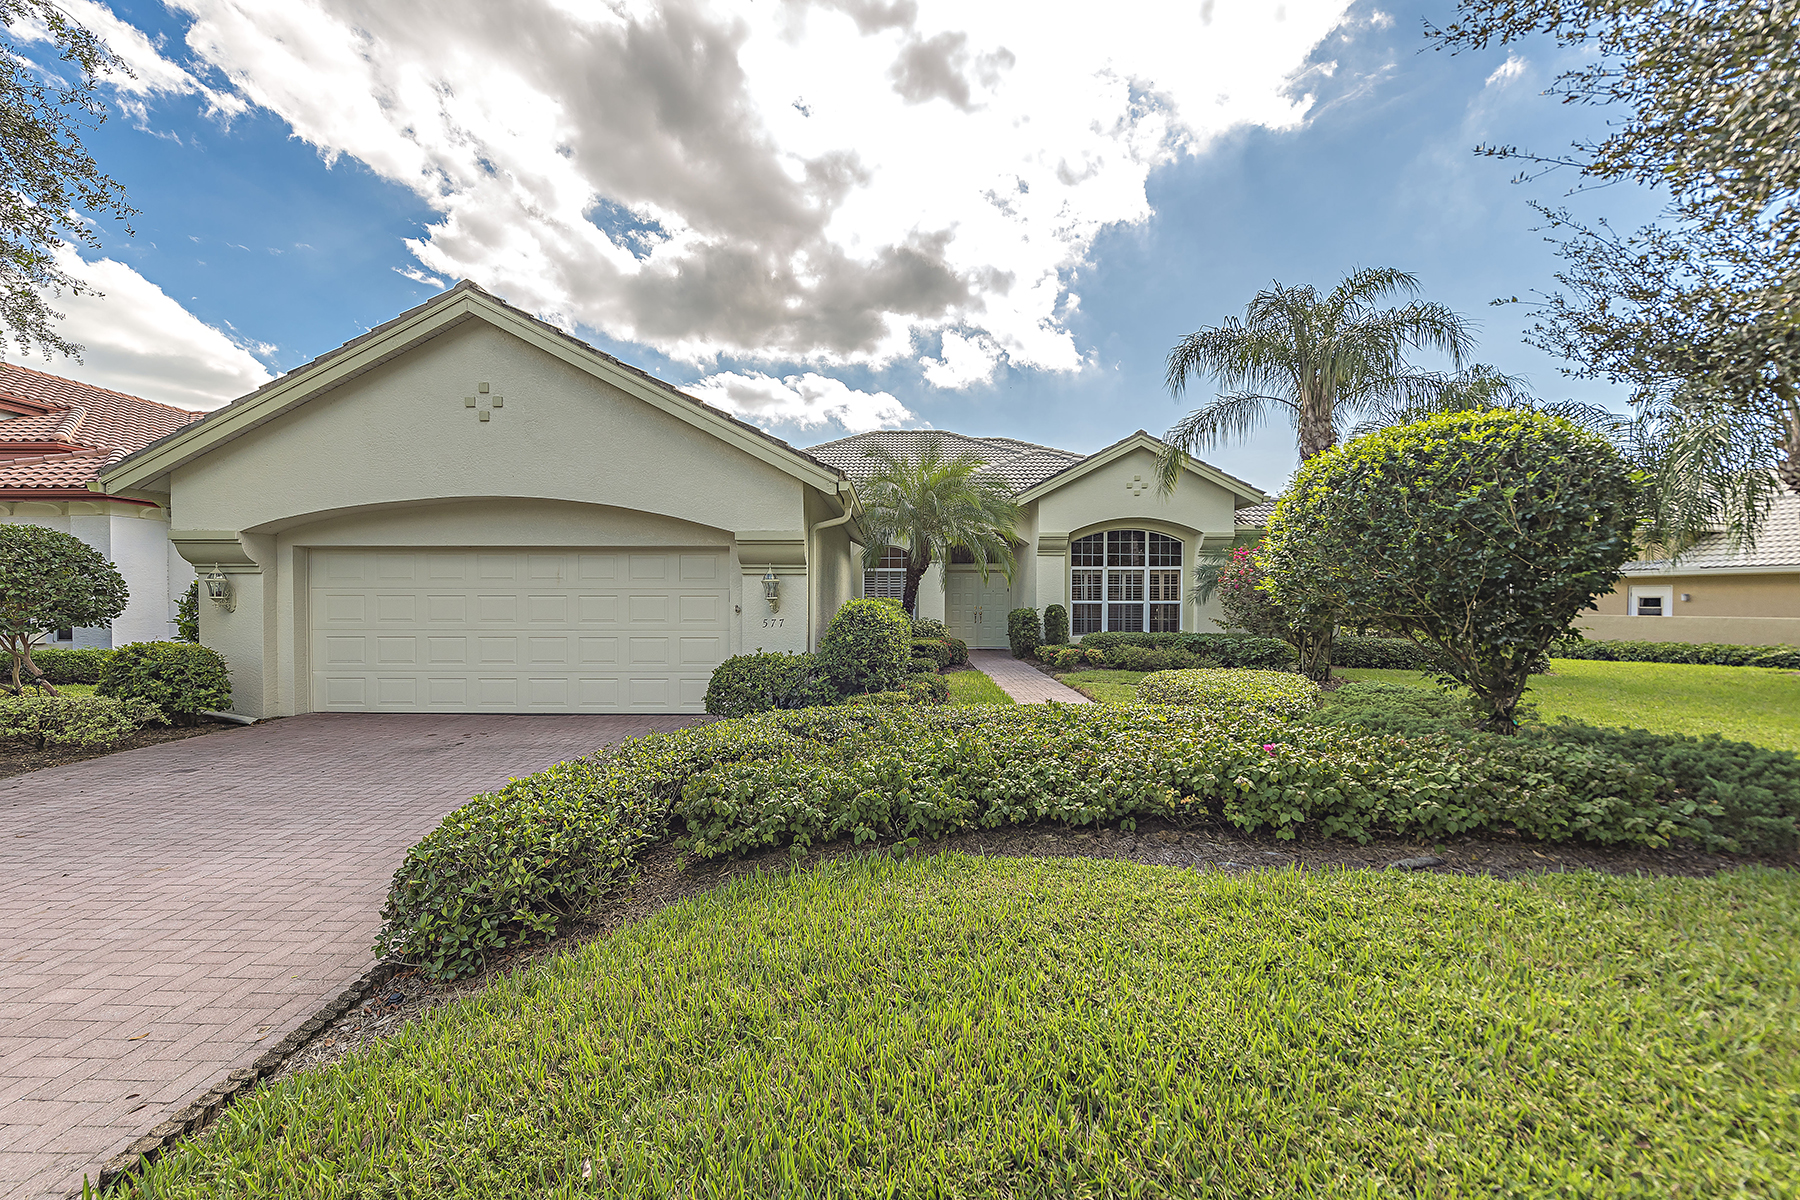 Vivienda unifamiliar por un Venta en 577 Wedgewood Way , Naples, FL 34119 577 Wedgewood Way Naples, Florida 34119 Estados Unidos